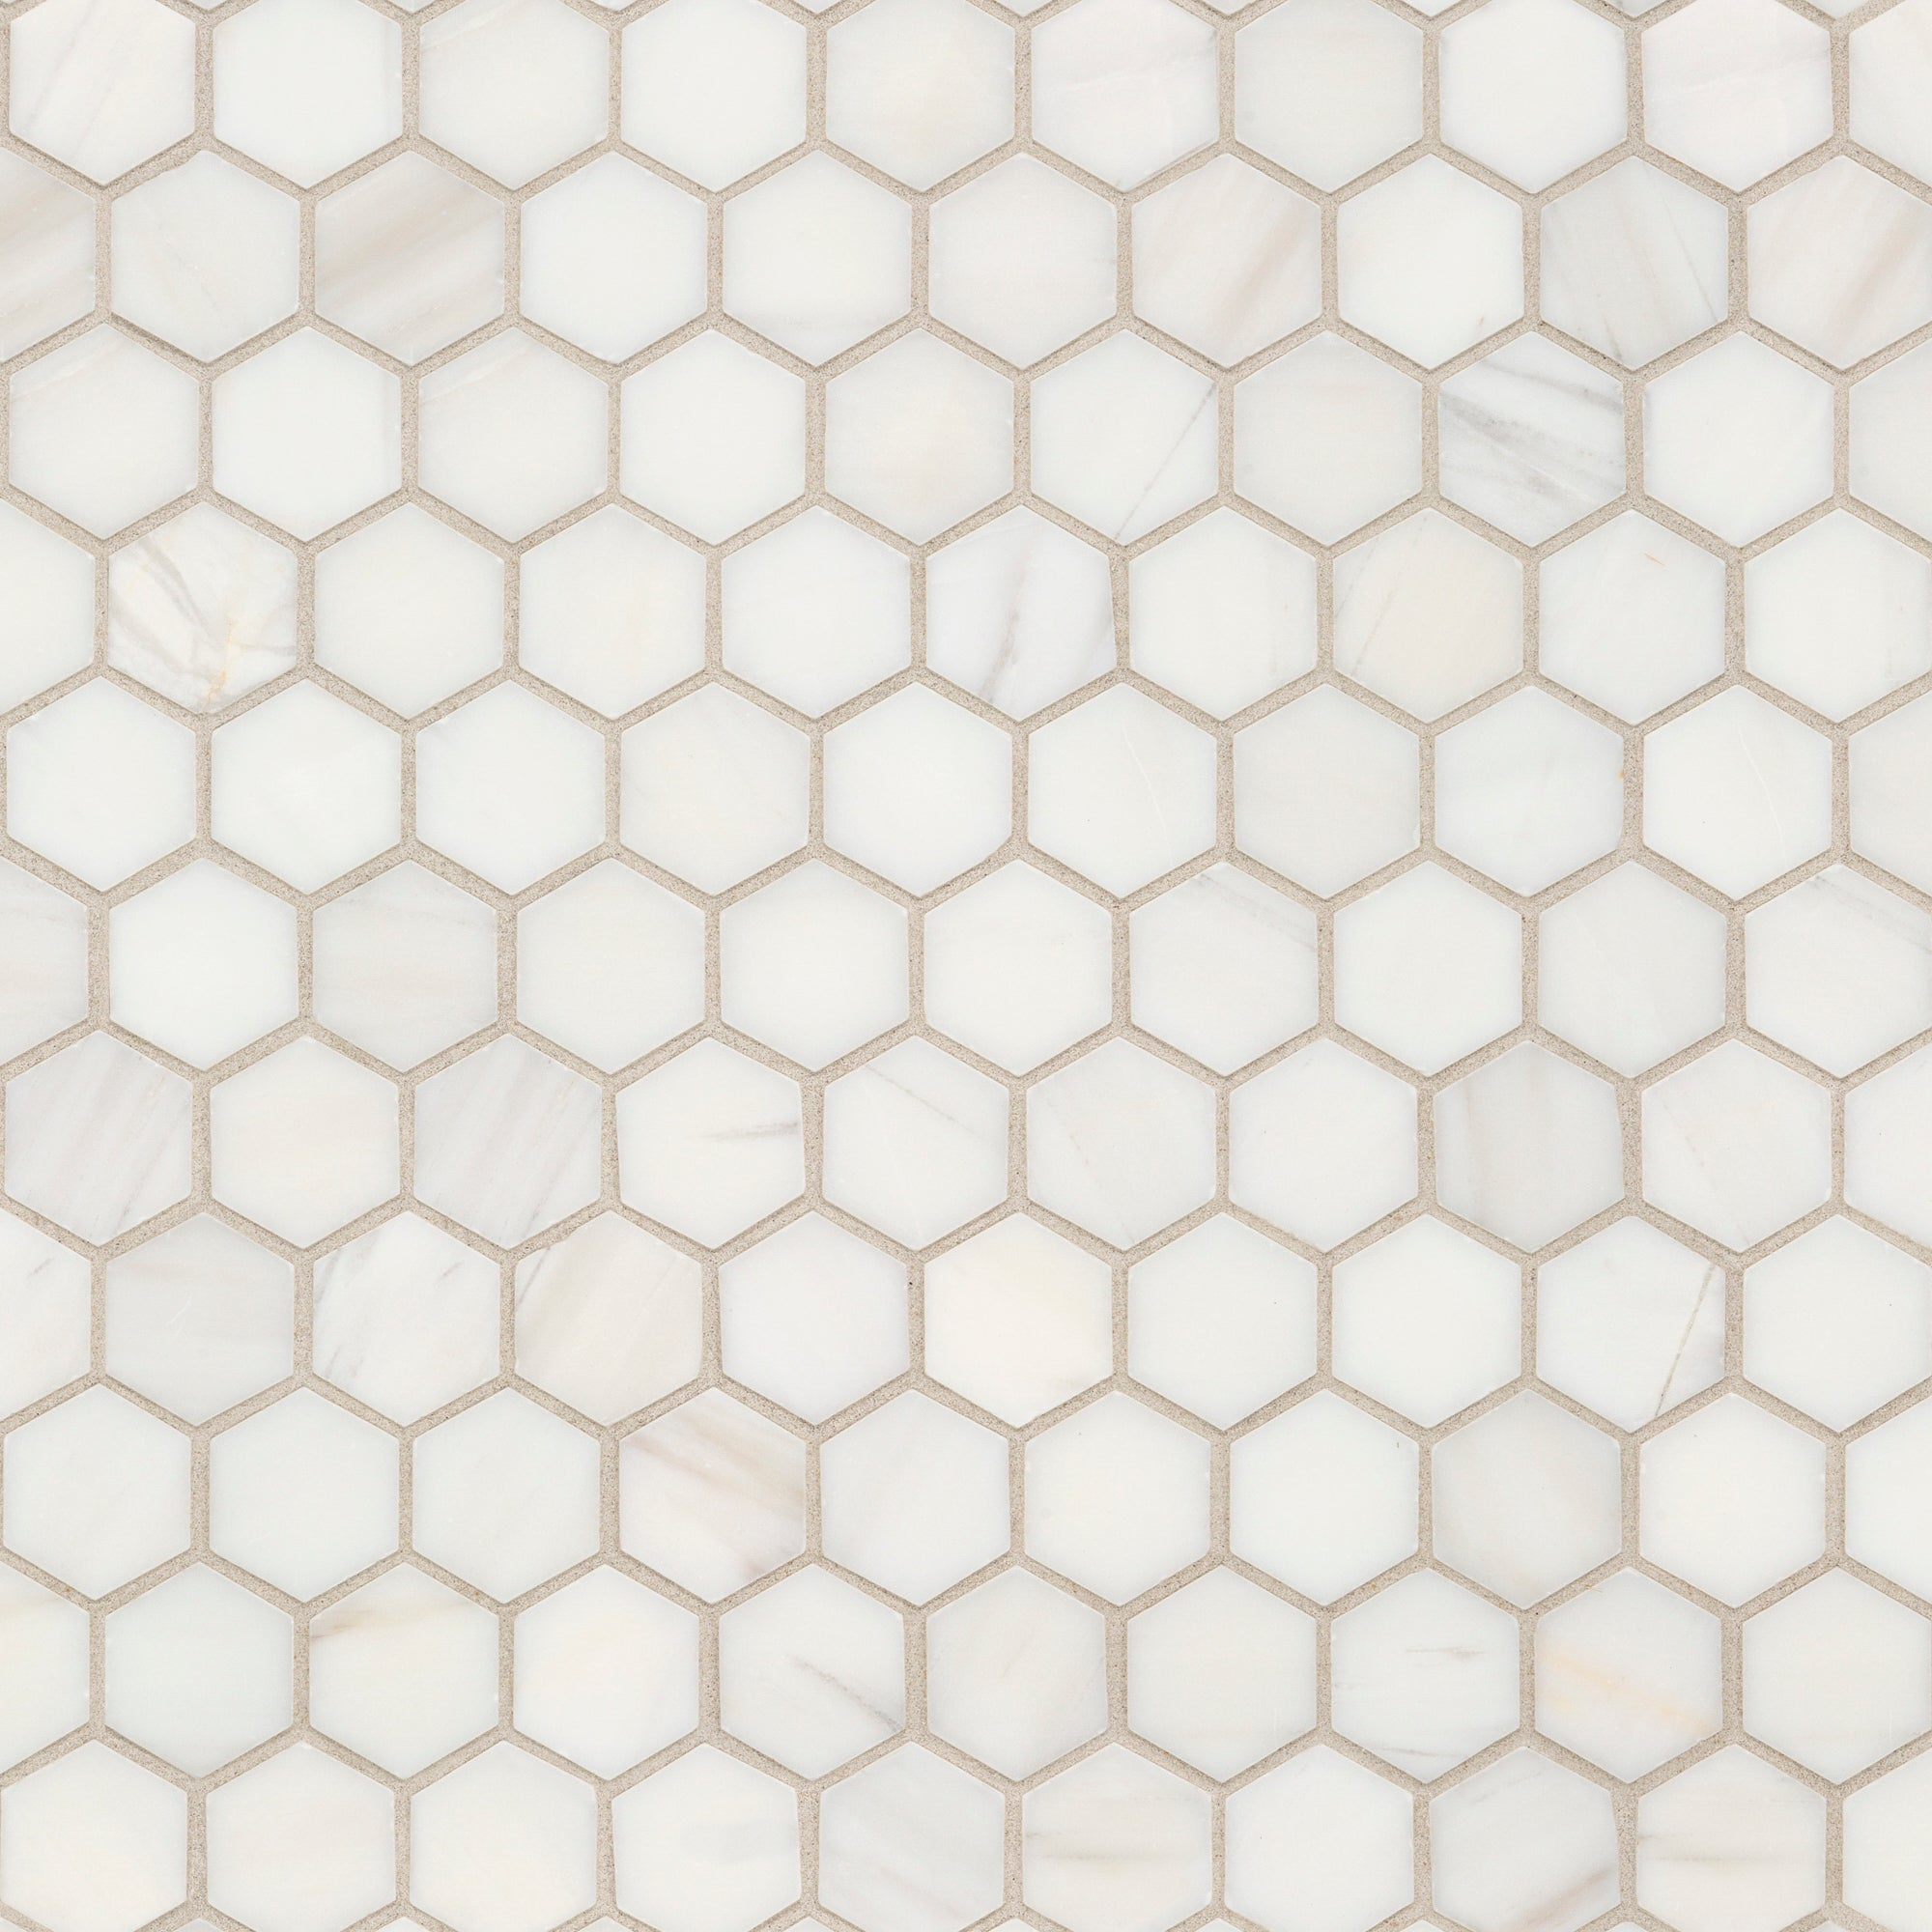 Mosaic Bianco Dolomiti Marble Swatch Card  Polished Samples Hexagon 3.0cm product photo